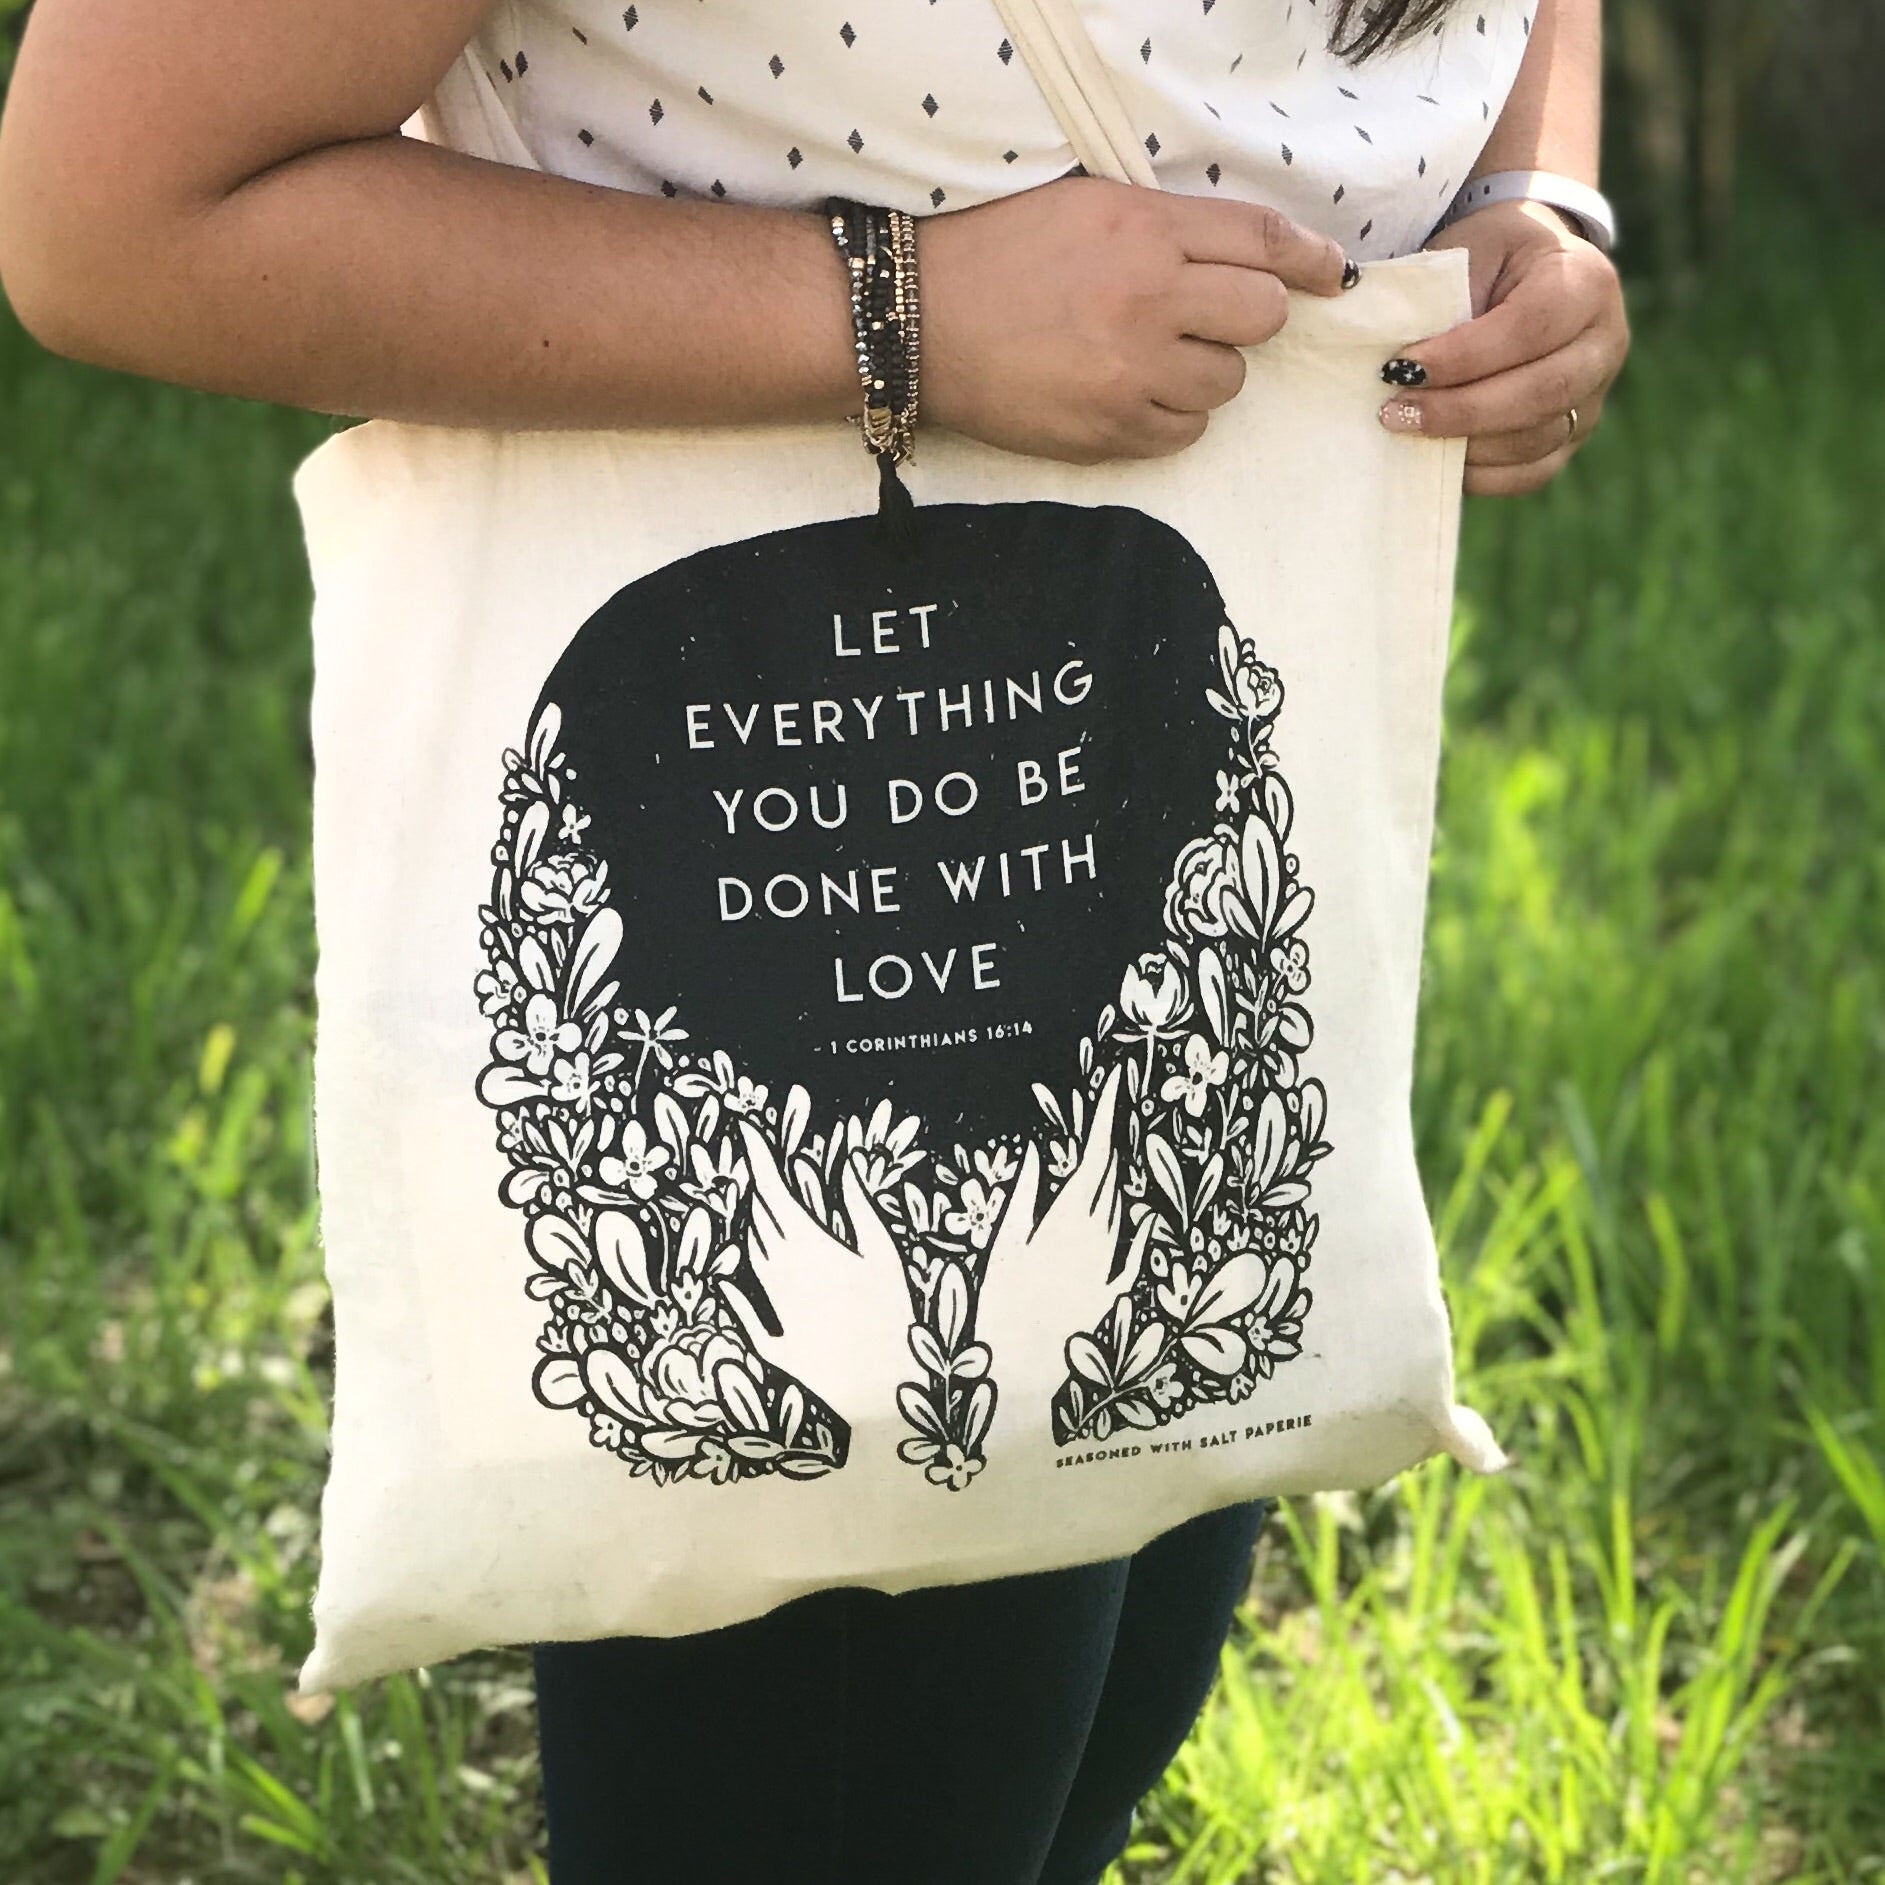 Let Everything You Do Be Done With Love 1 Corinthians 16:14 JW Tote Bag, Baptism And Pioneer Gift